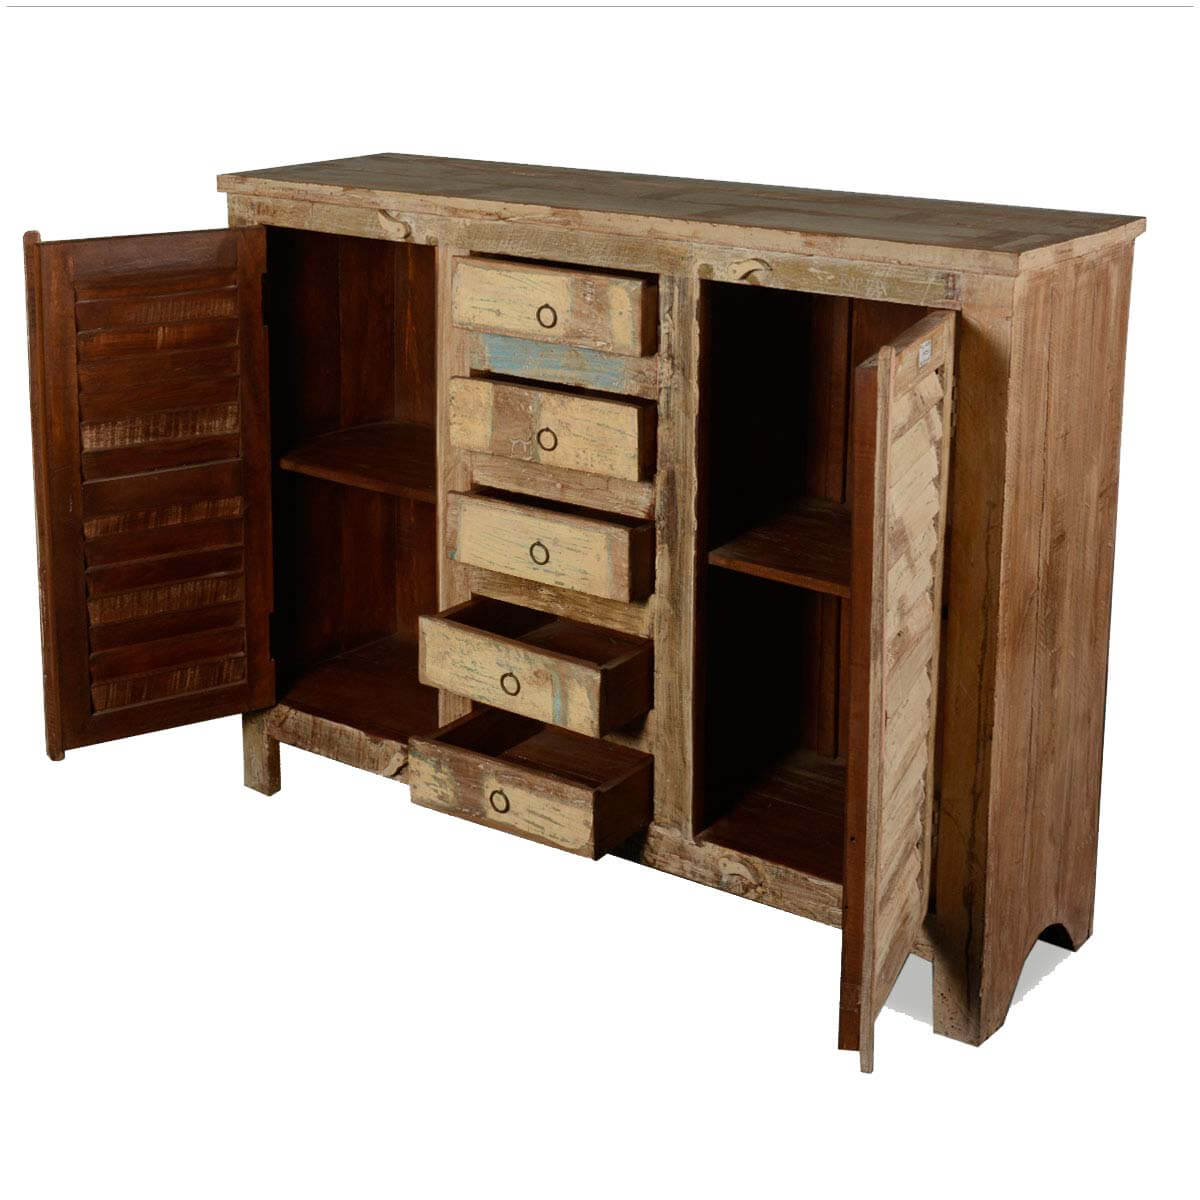 Weathered Reclaimed Wood Furniture 5 Drawer 2 Doors Sideboard Cabinet